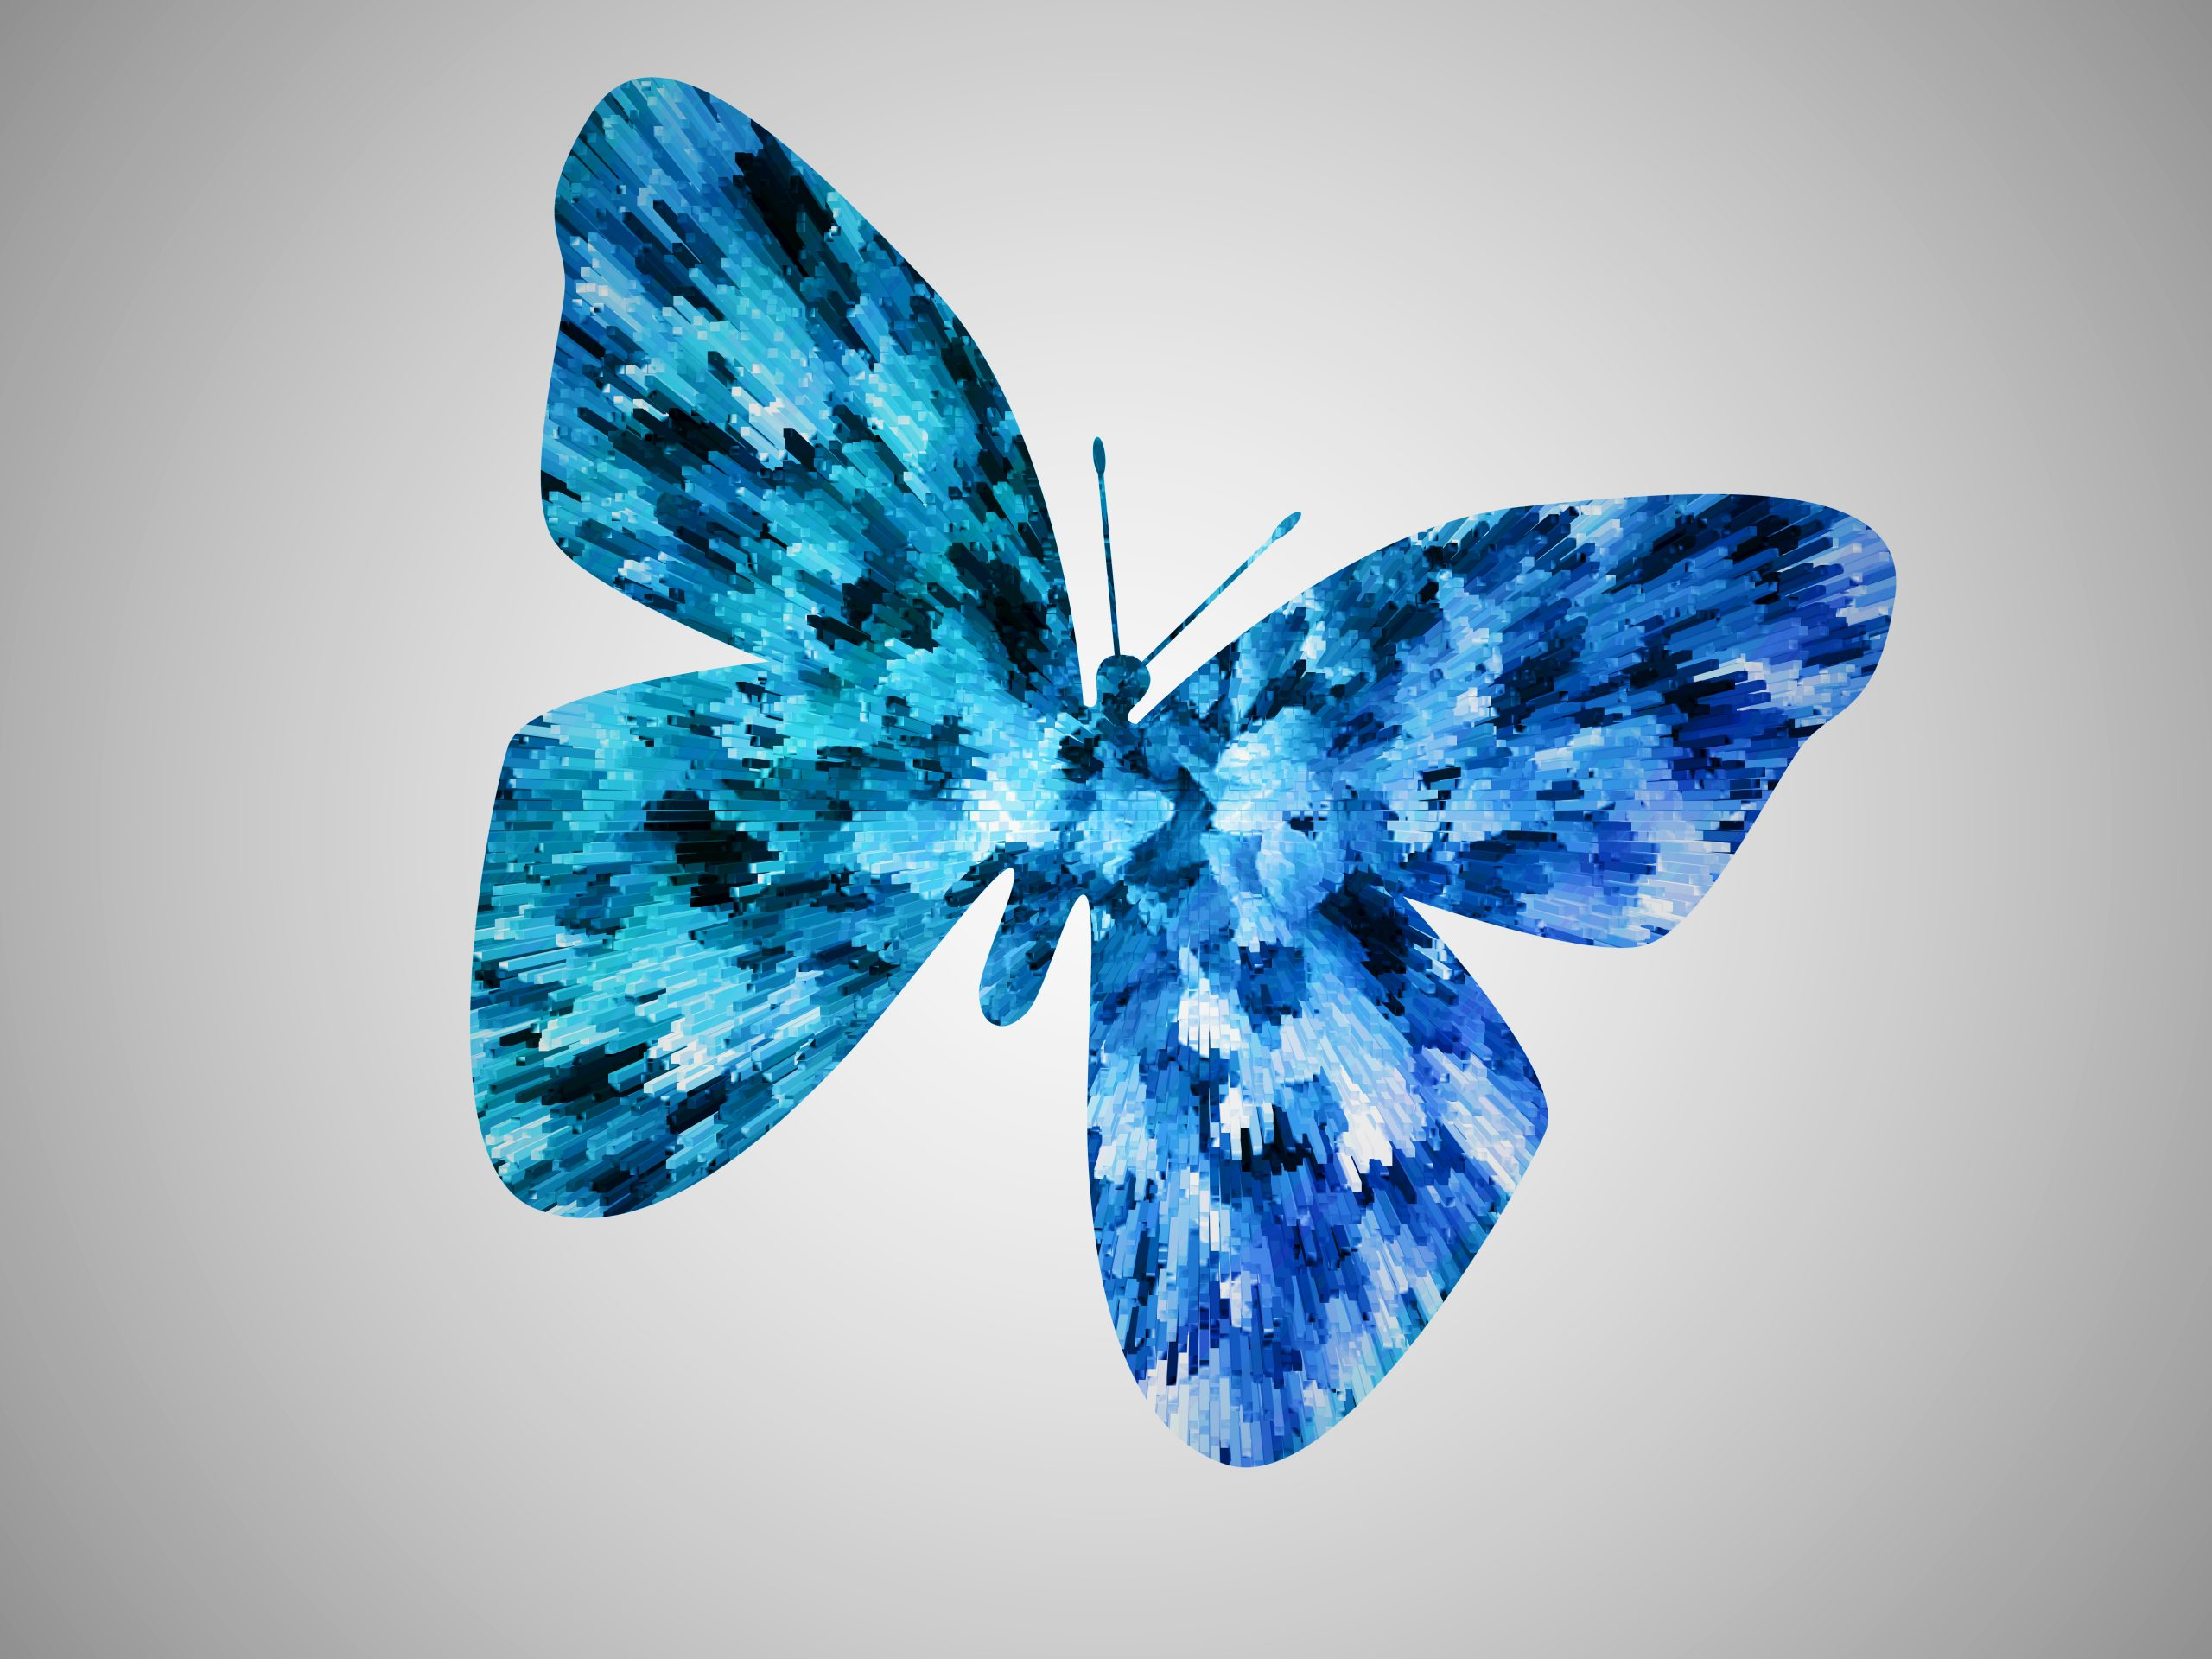 Butterfly wallpaper illustration